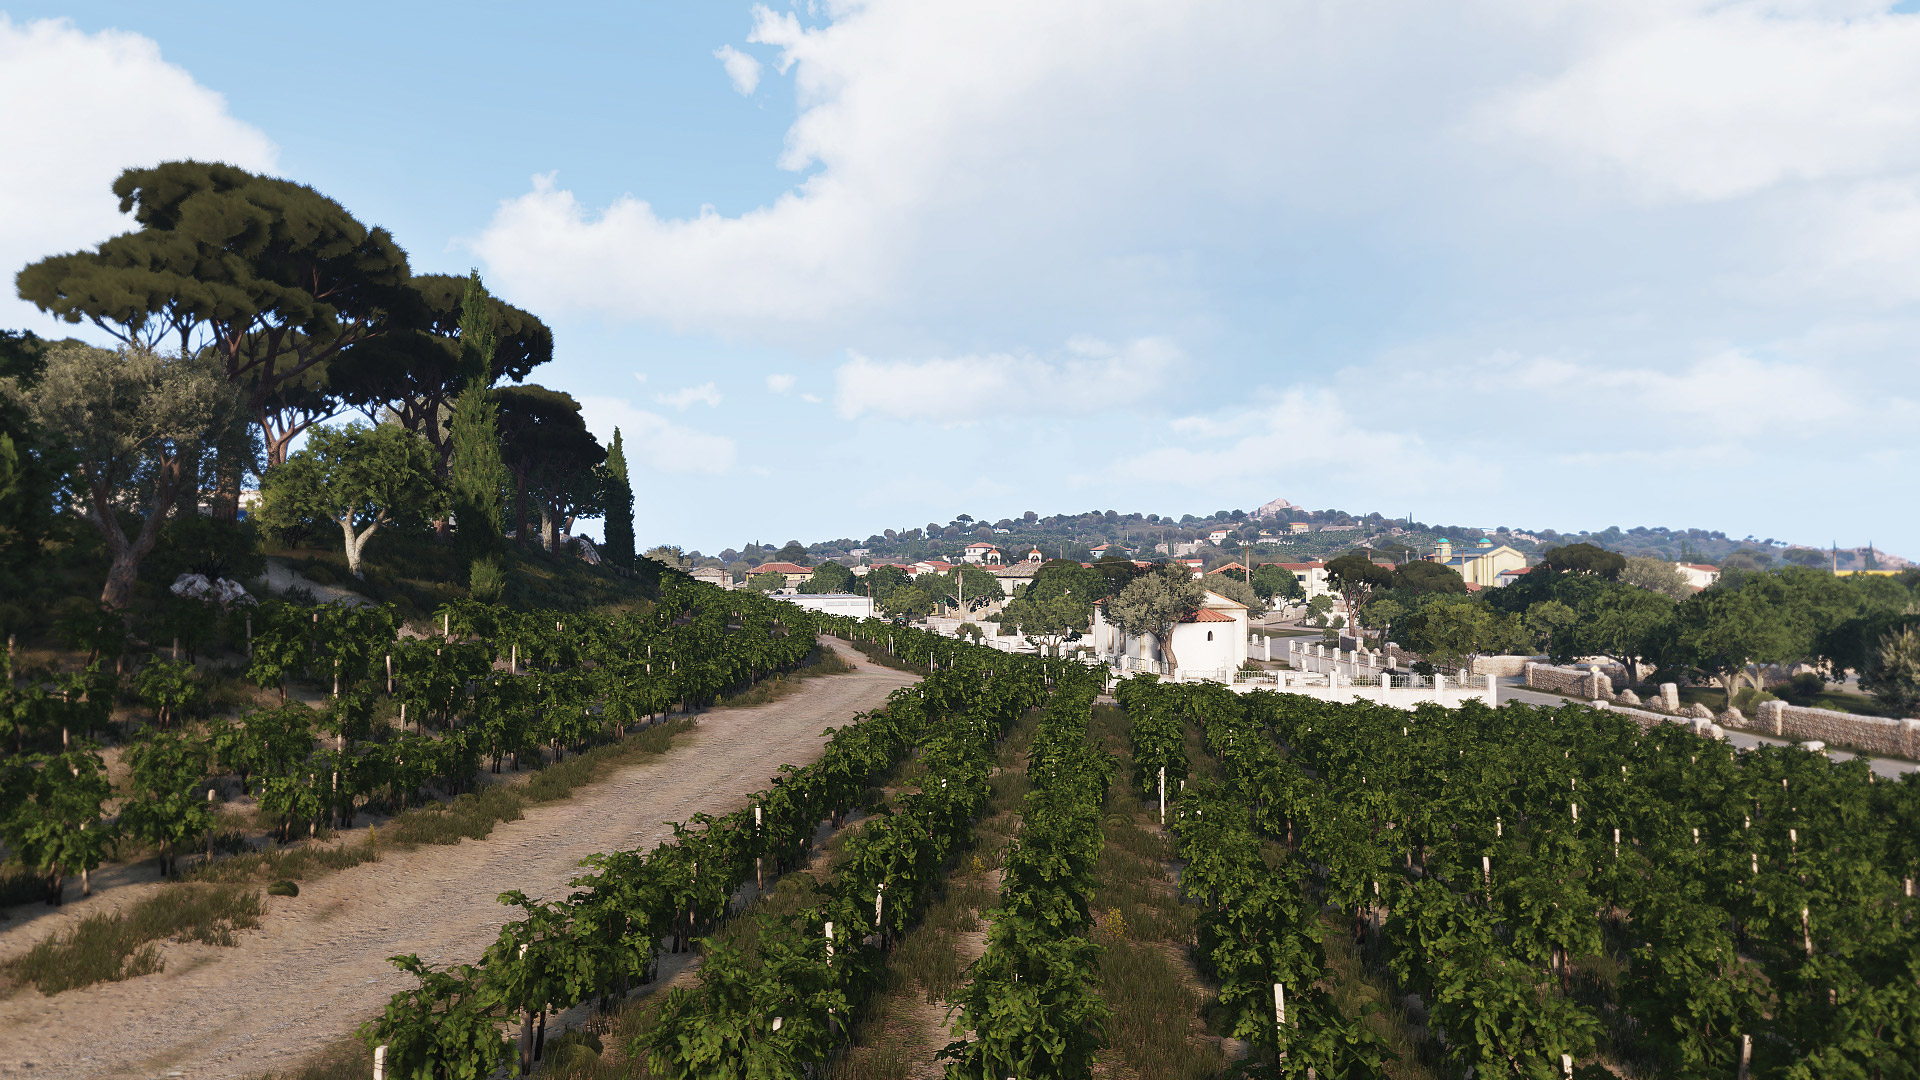 archived] Weed fields - Archive - Grand Theft ArmA - The Altis Life